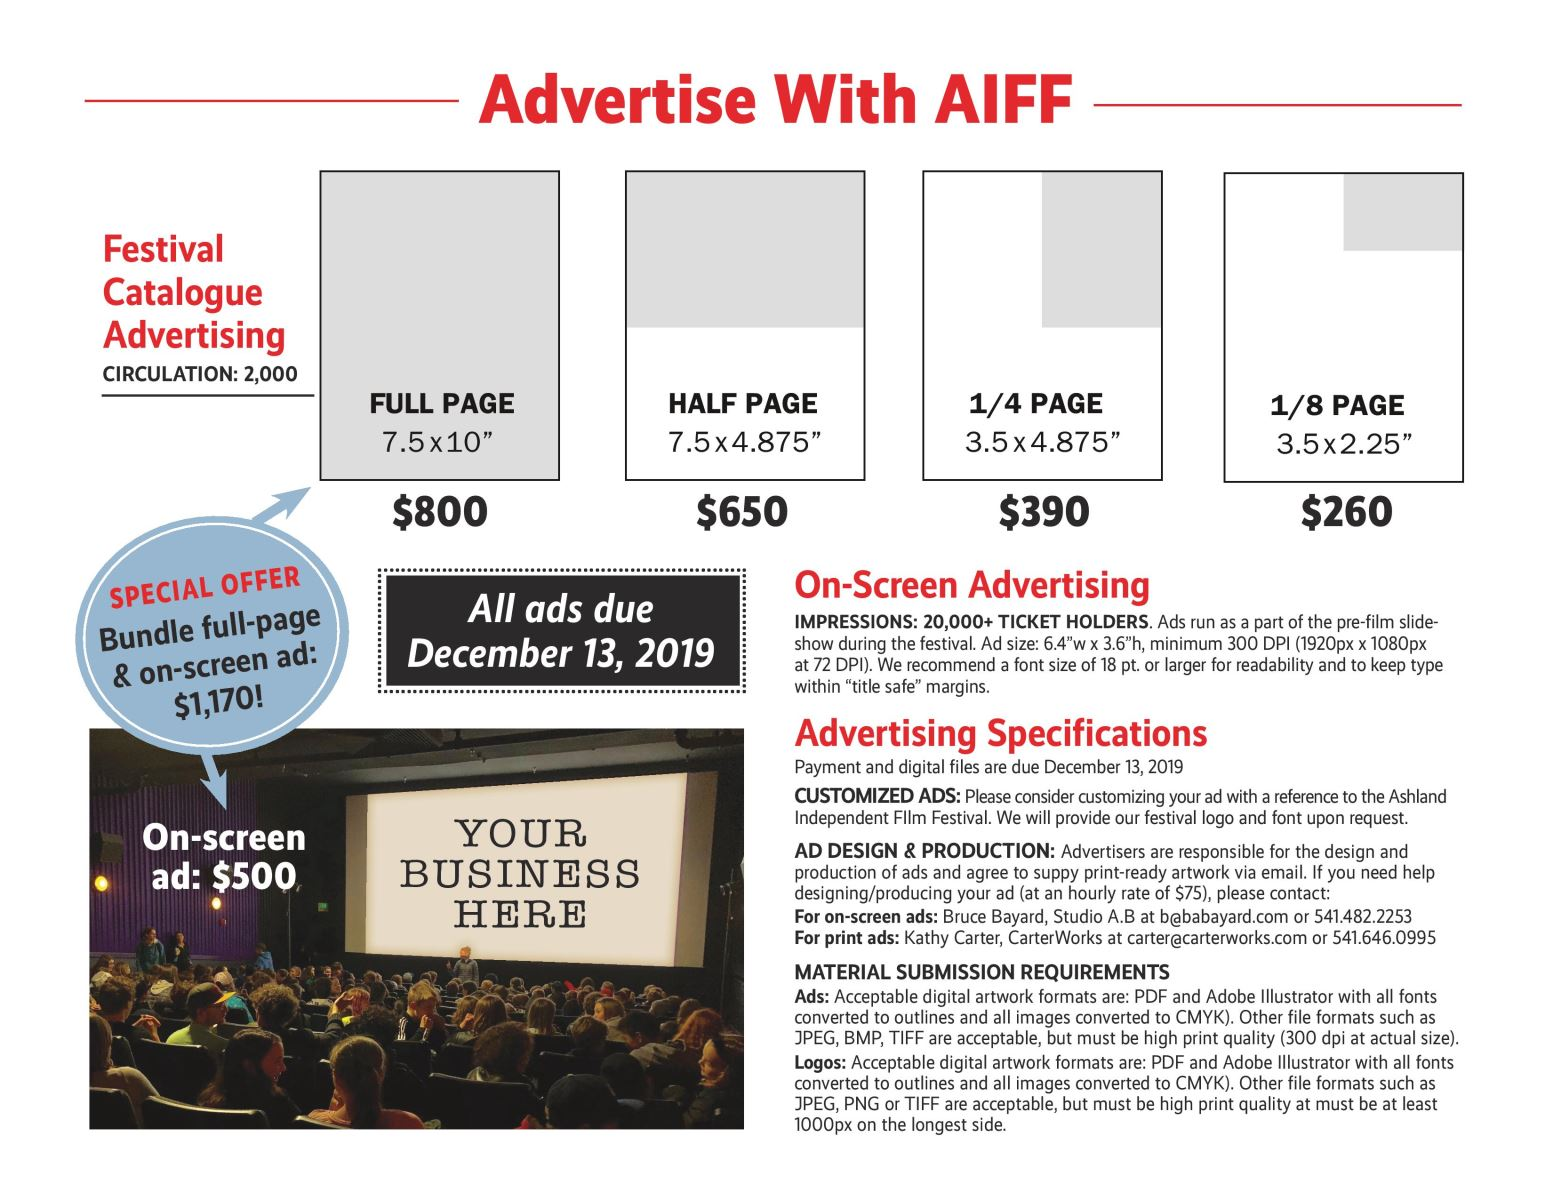 Advertise with AIFF